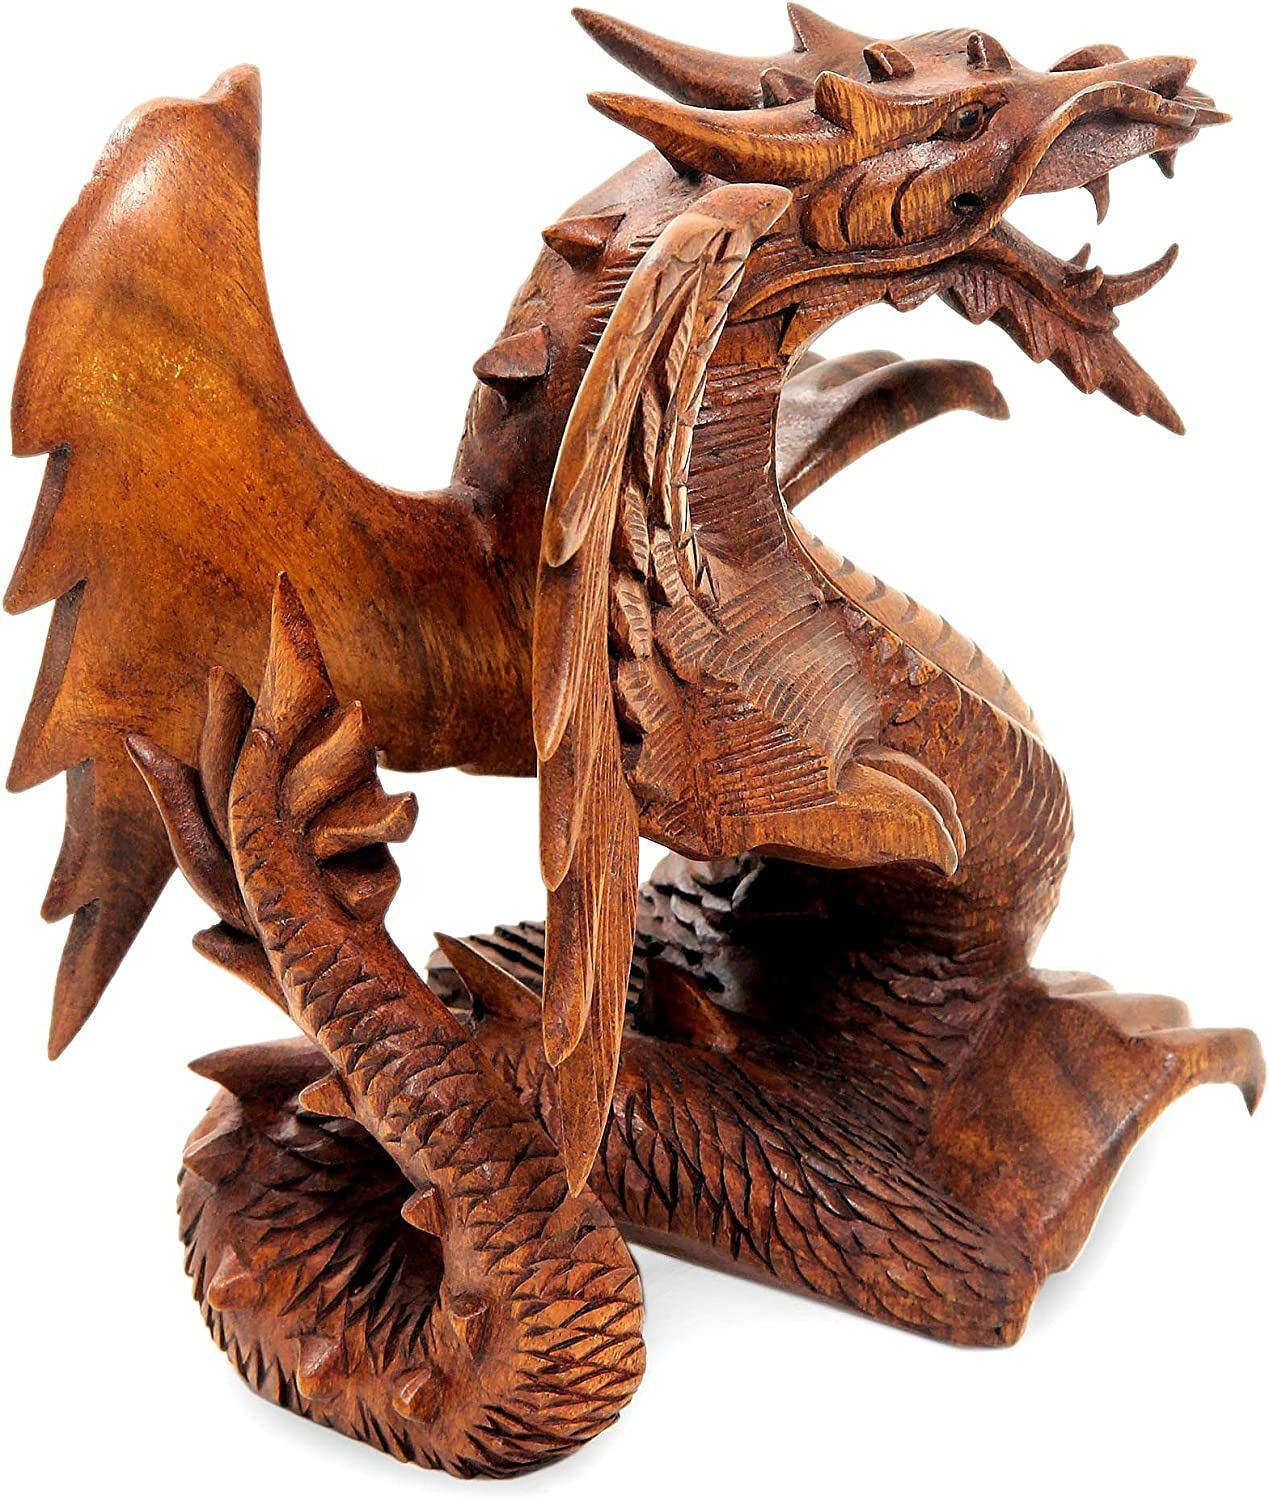 Amazon Com Oma Dragon Statue Fiery Dragon Wood Carved Figurine Dragon Decor Fantasy X Large Collector S Item Brand Home Kitchen